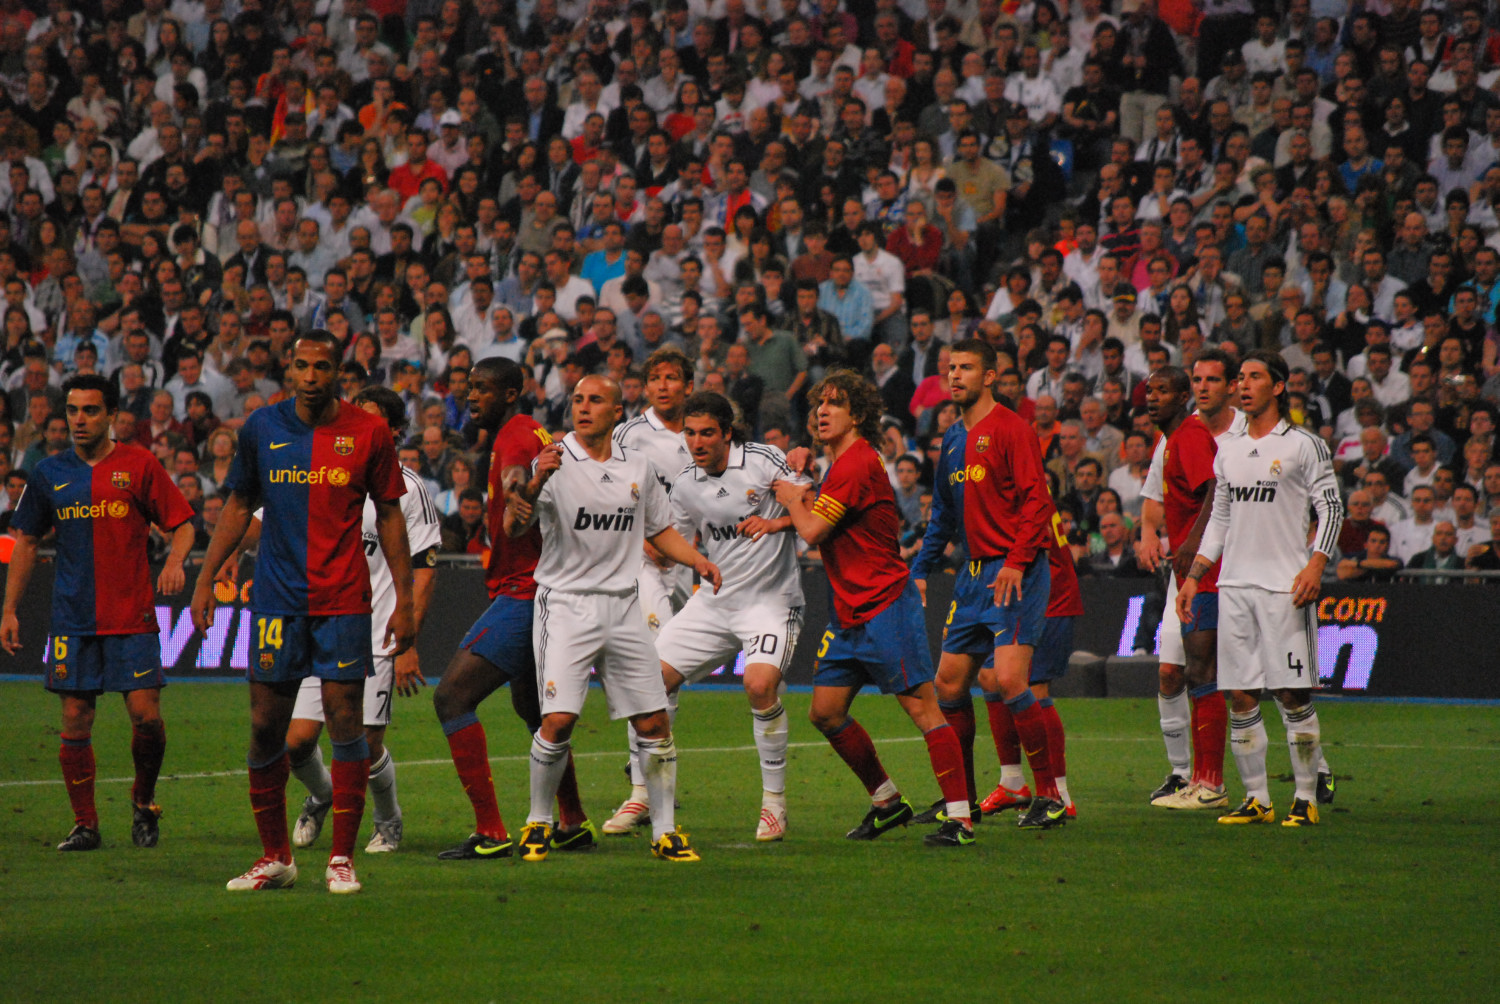 Fc barcelona wikipedia players jostle in barcelonas 26 win against real madrid at the santiago bernabu stadium in a 2009 el clsico stopboris Choice Image